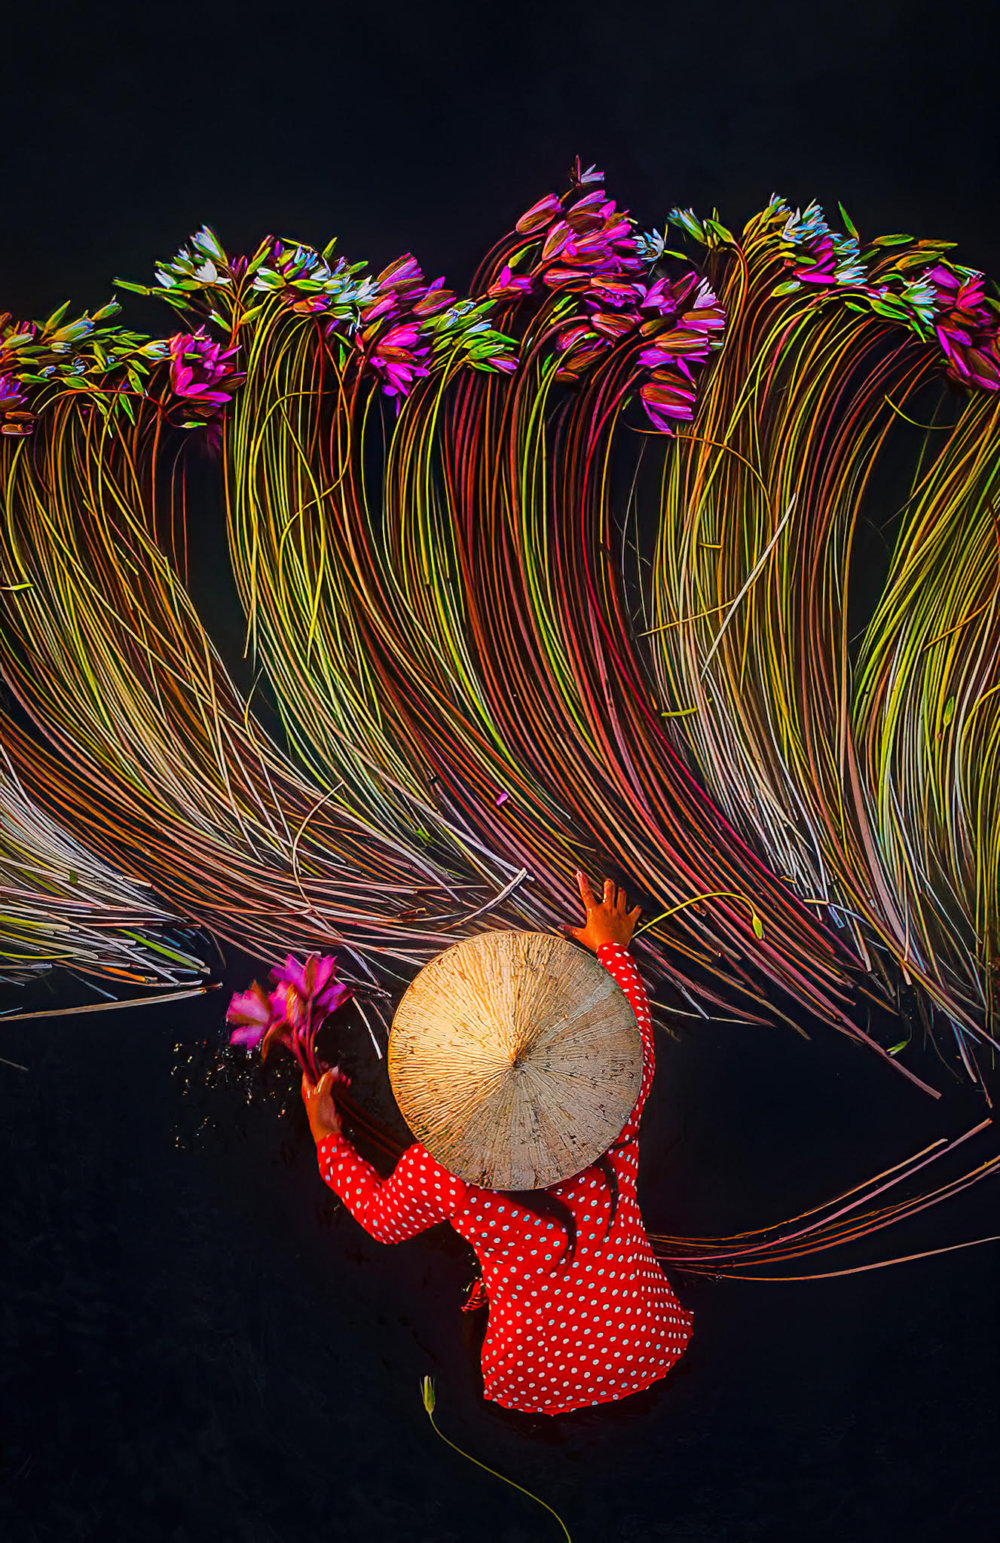 Beautiful Shots Of The Water Lily Harvest In Vietnam Captured By The Lens Of Pham Huy Trung 3